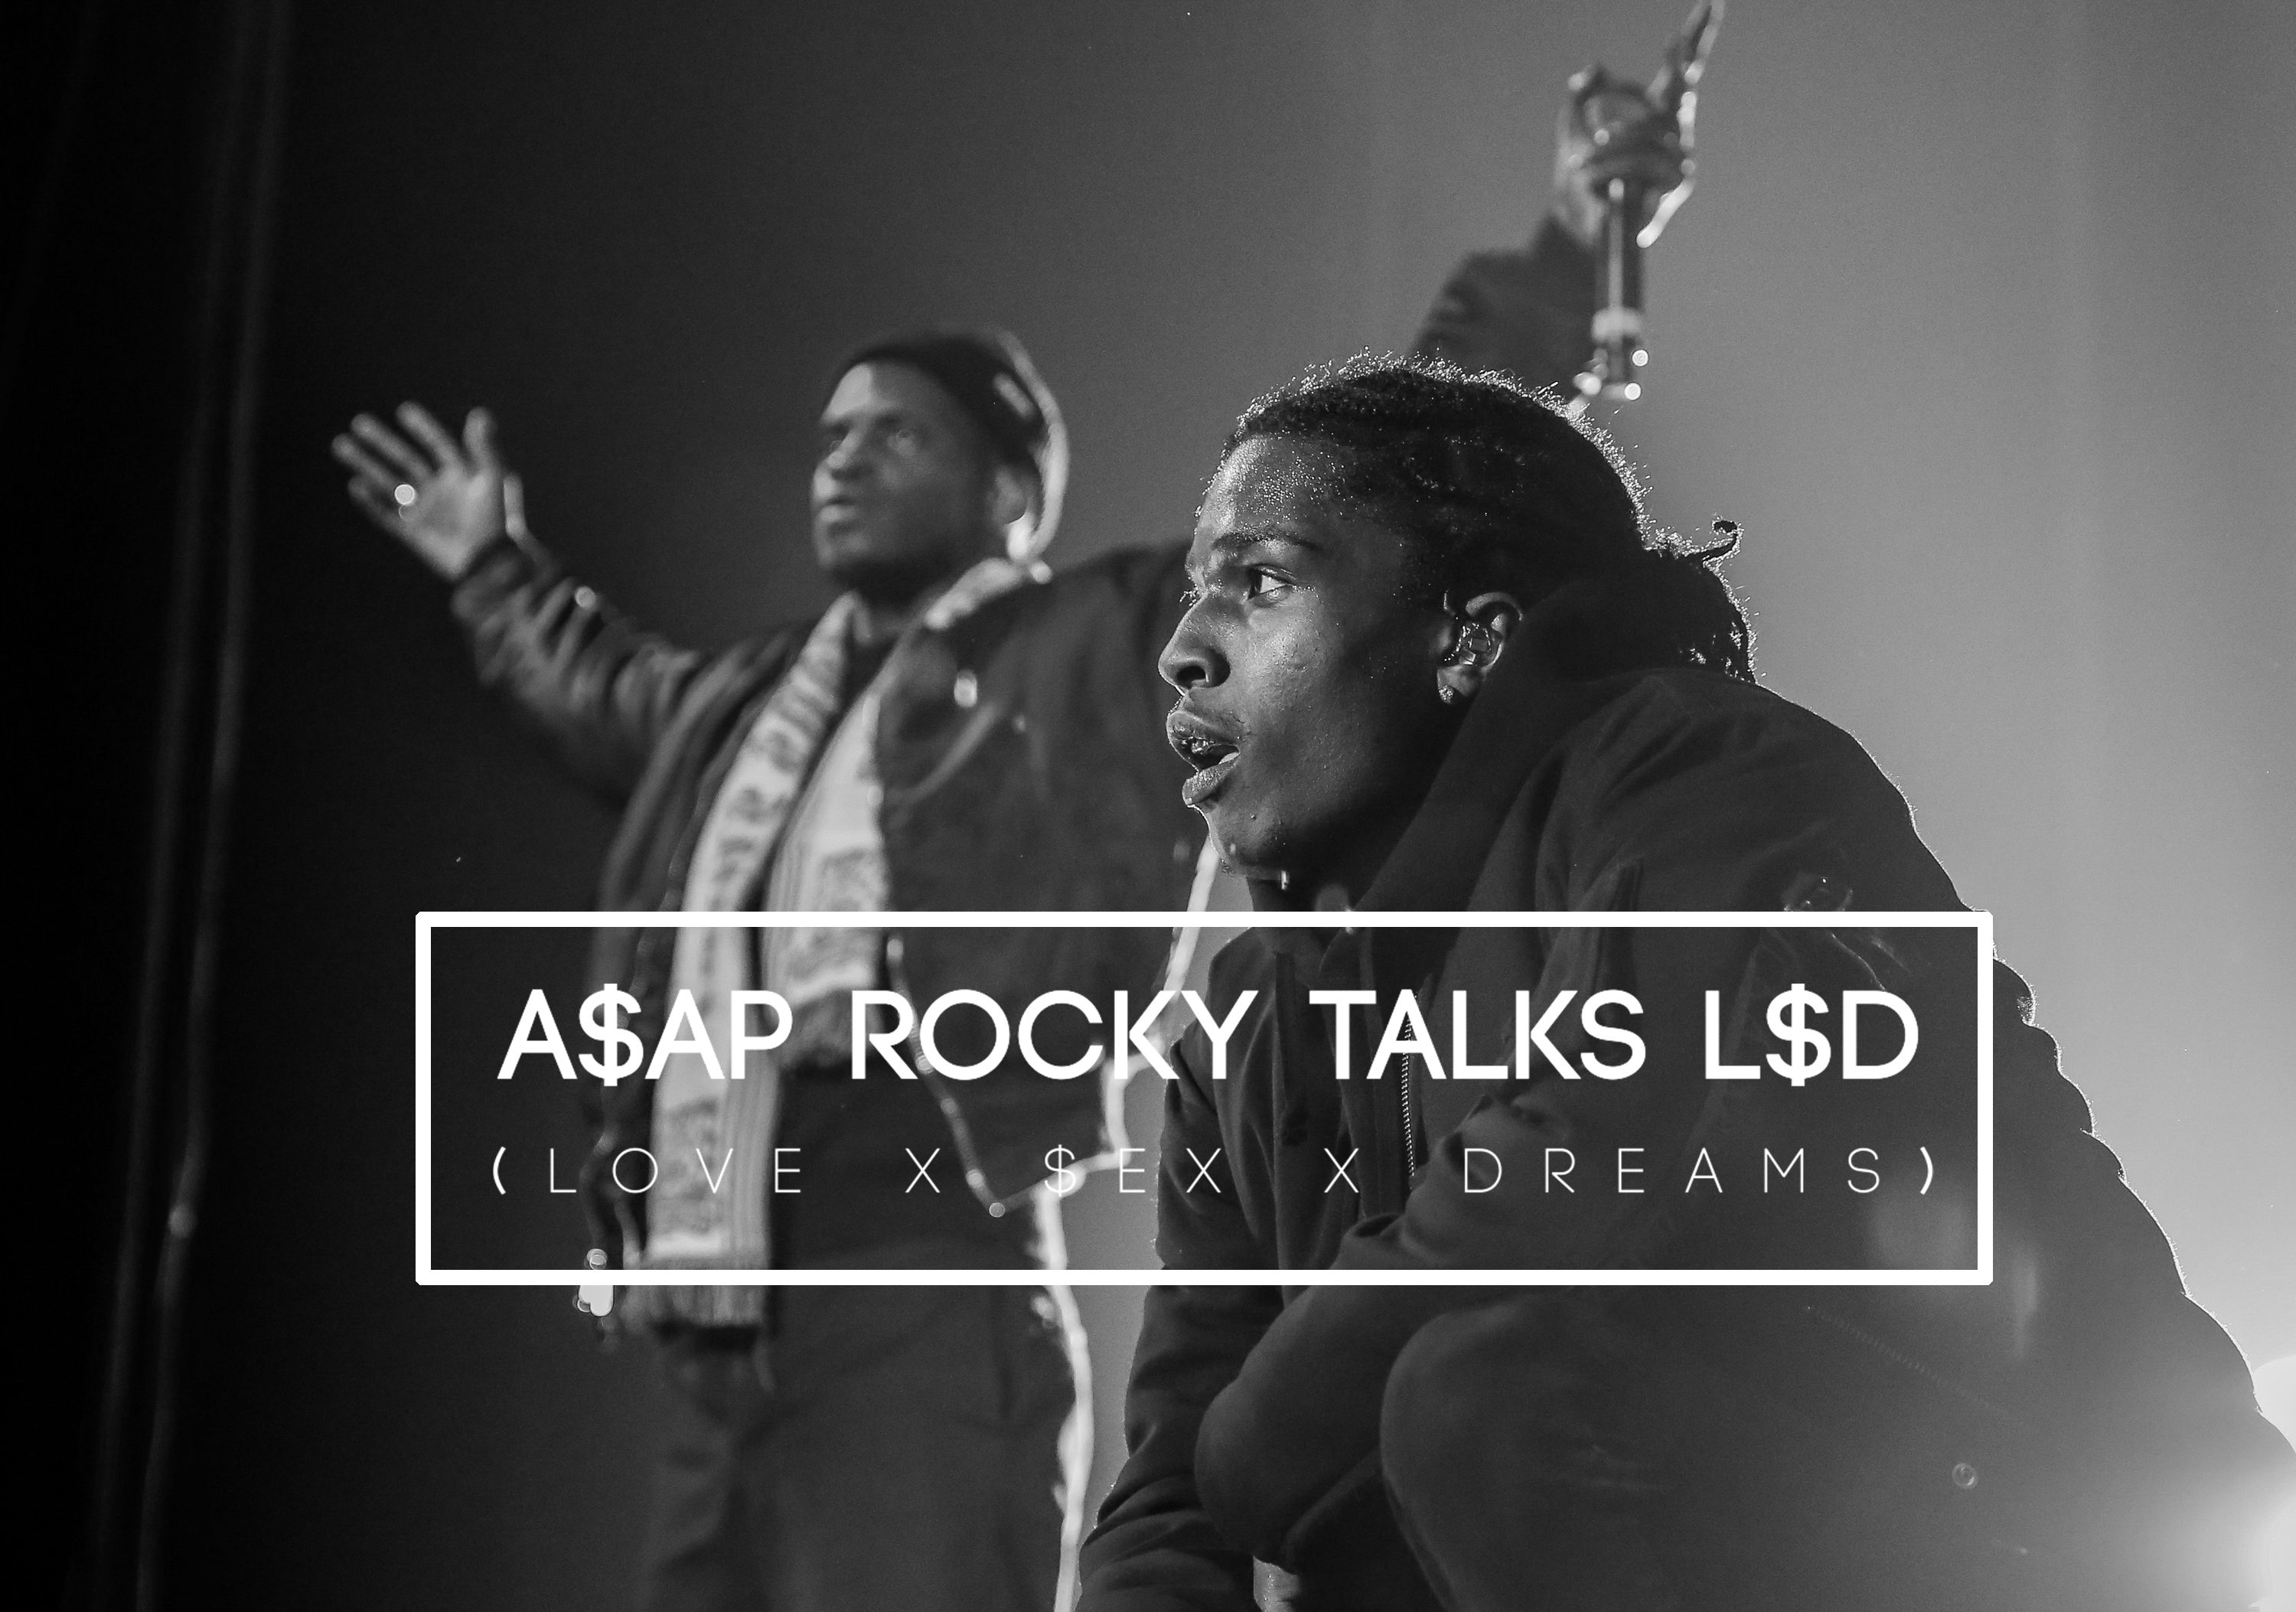 AVAILABLE) LONDON, ENGLAND - OCTOBER 17: (EDITORS NOTE: IMAGE SHOT IN BLACK & WHITE. NO COLOUR VERSION AVAILABLE) A$AP Rocky performs on stage at The O2 Arena on October 17, 2015 in London, England.